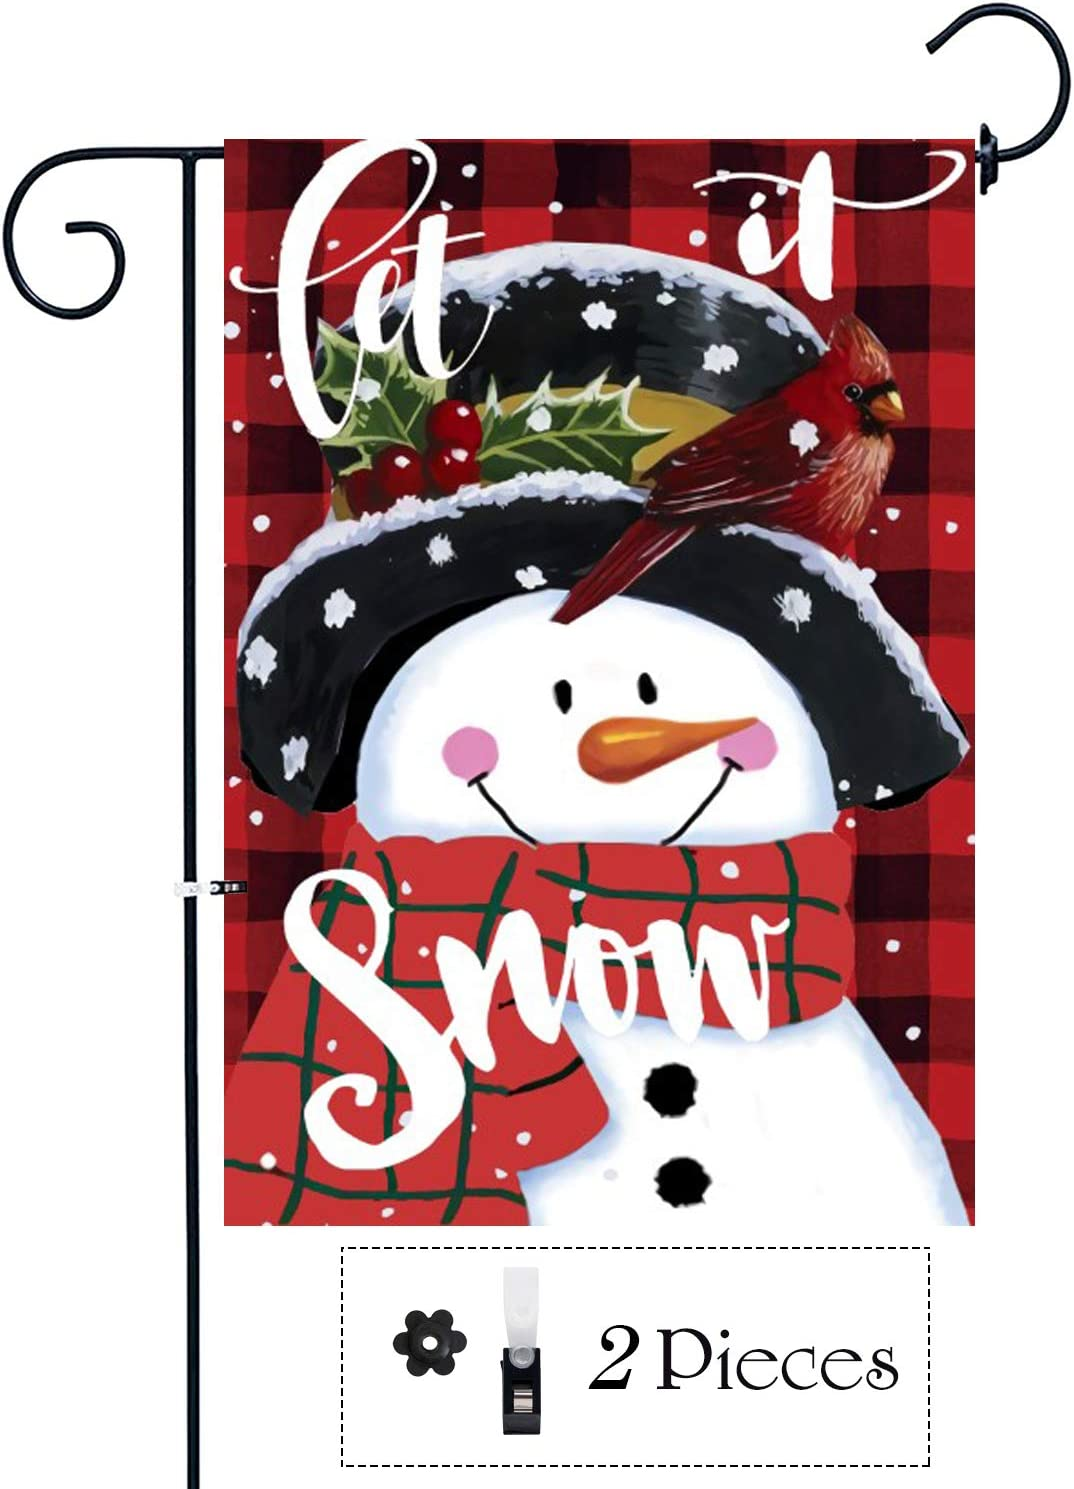 Didida Home Christmas Garden Flag Snowman Let It Snow Yard Decor Flag Decorative Winter Xmas Flag Holiday Farmhouse Outdoor Double Sided Christmas Outside Decoration Banner Yard Sign With Clip Stopper